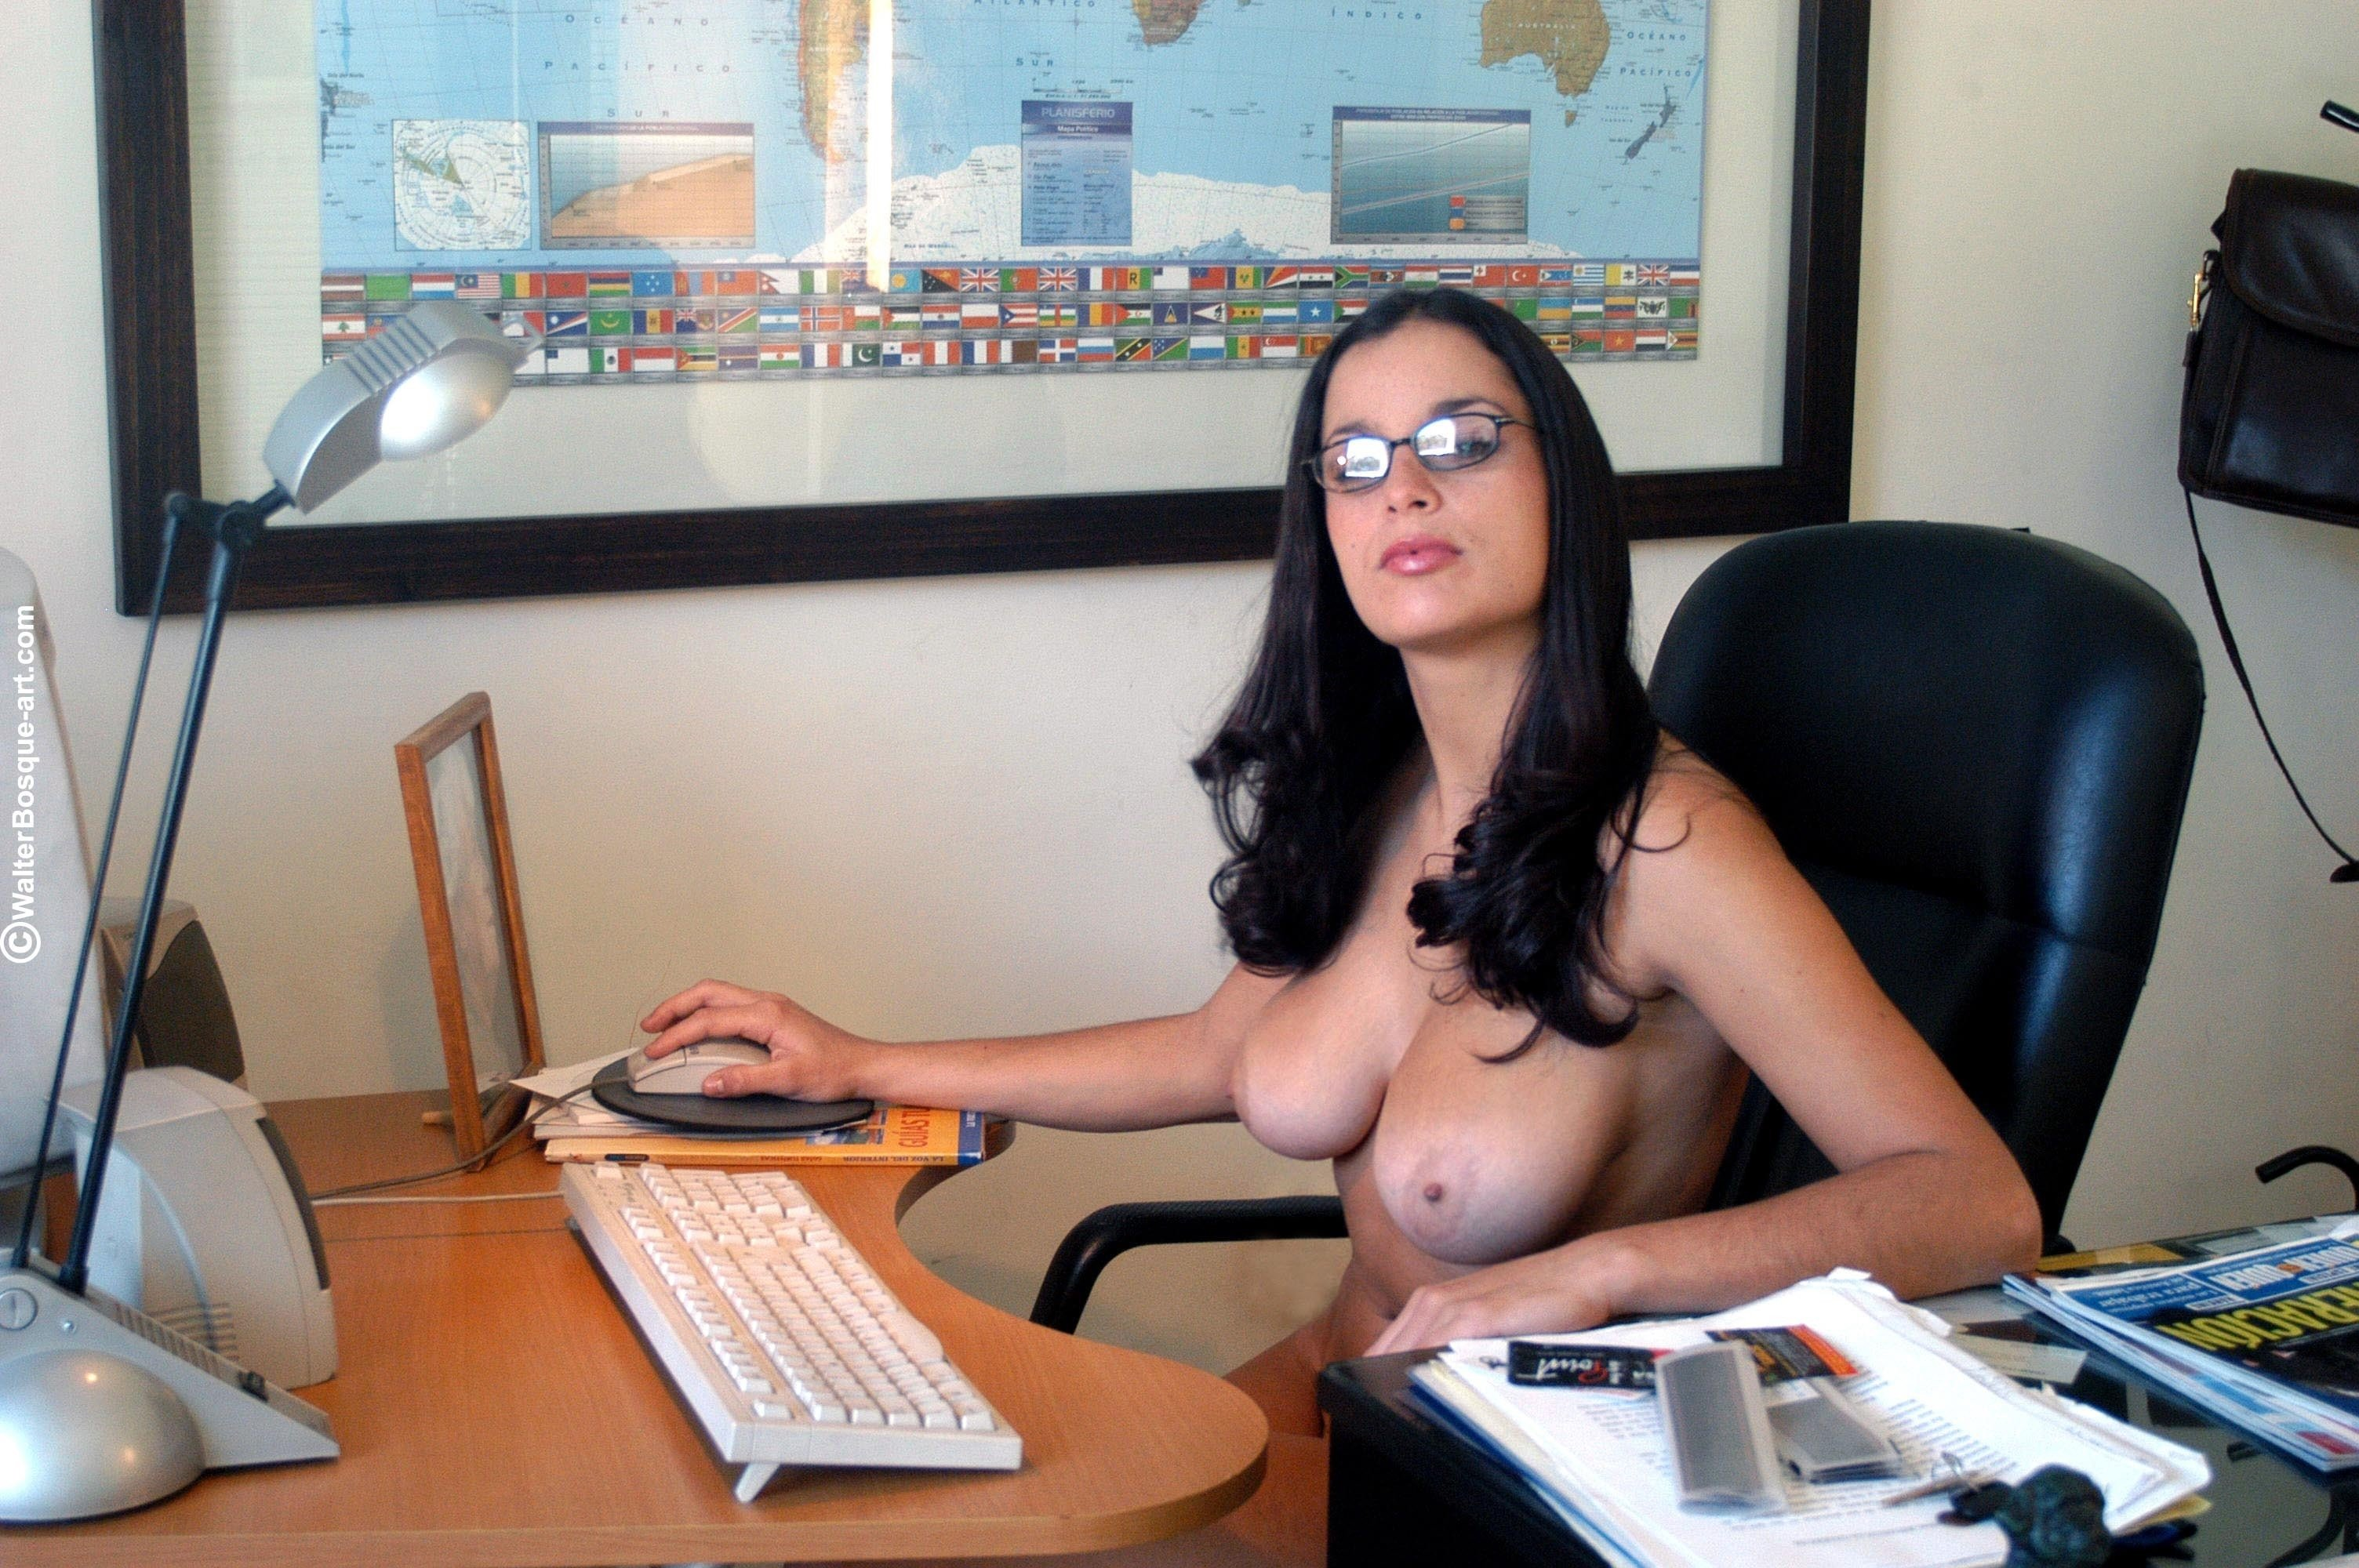 nude-office-chick-big-tit